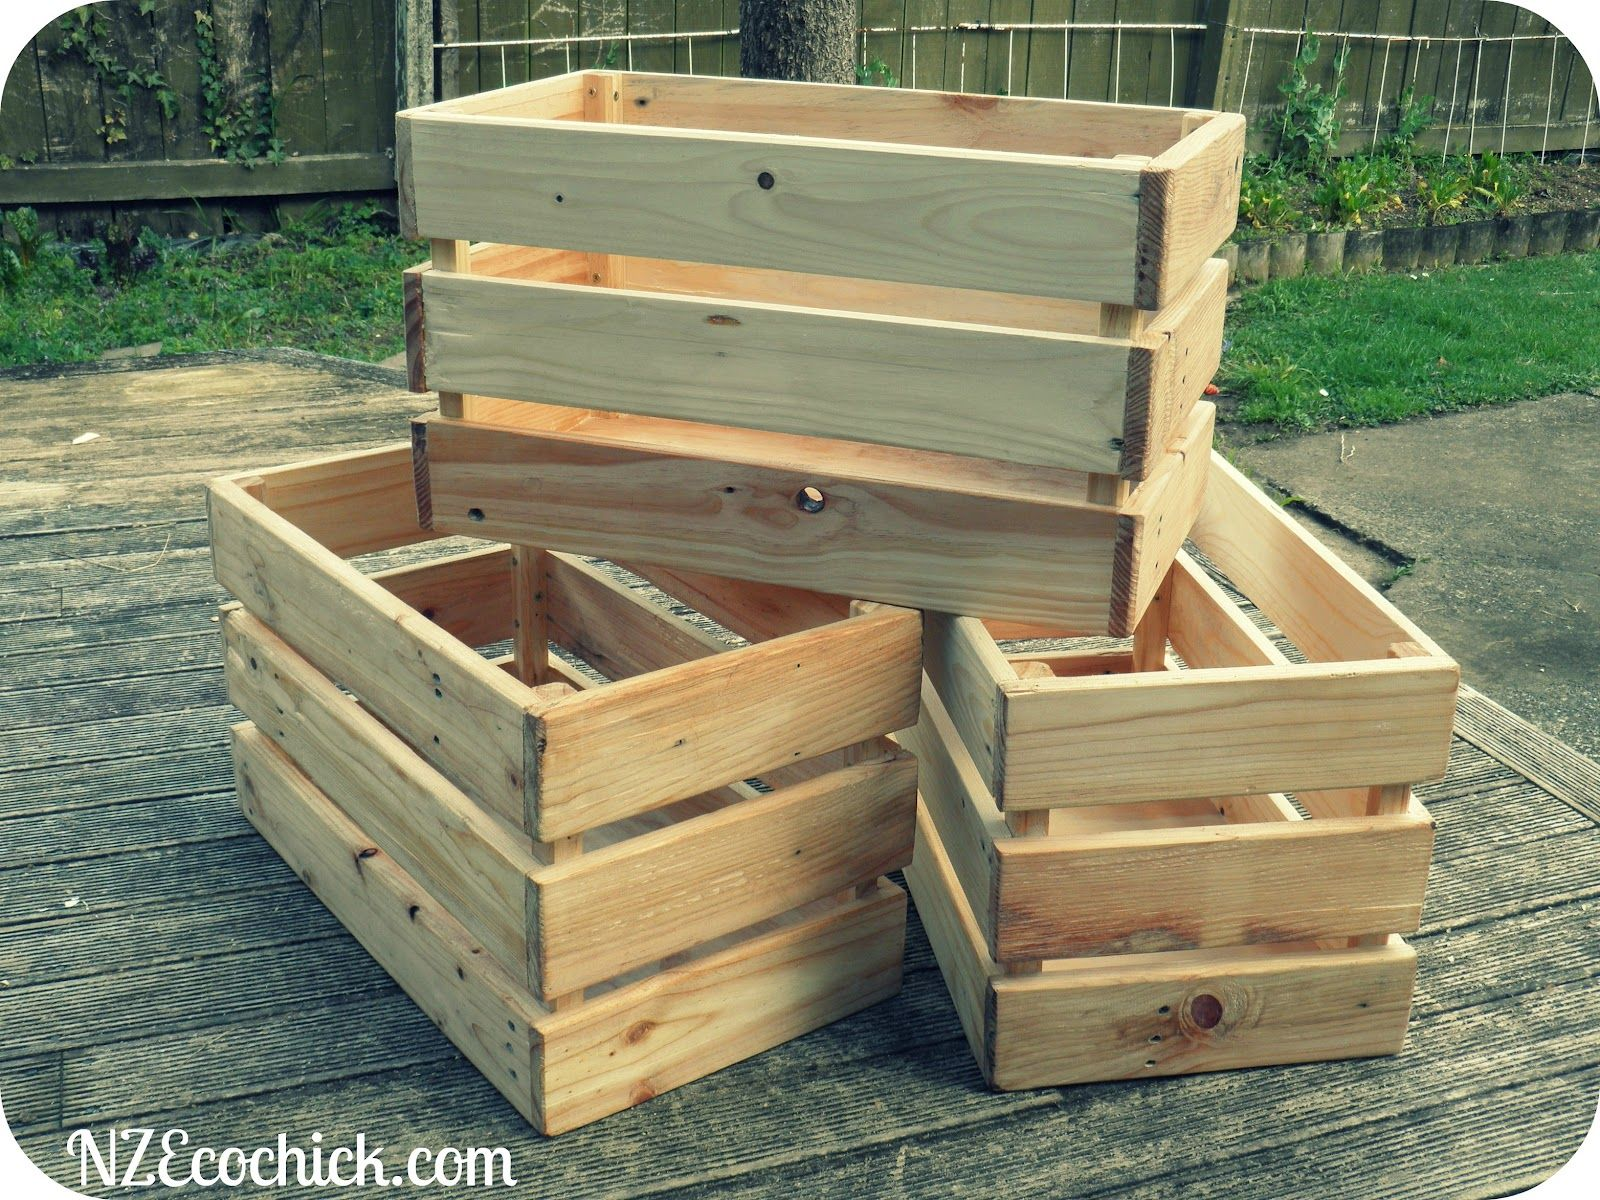 Things to make out of pallets nz ecochick pallet crates for Things to make out of wooden pallets